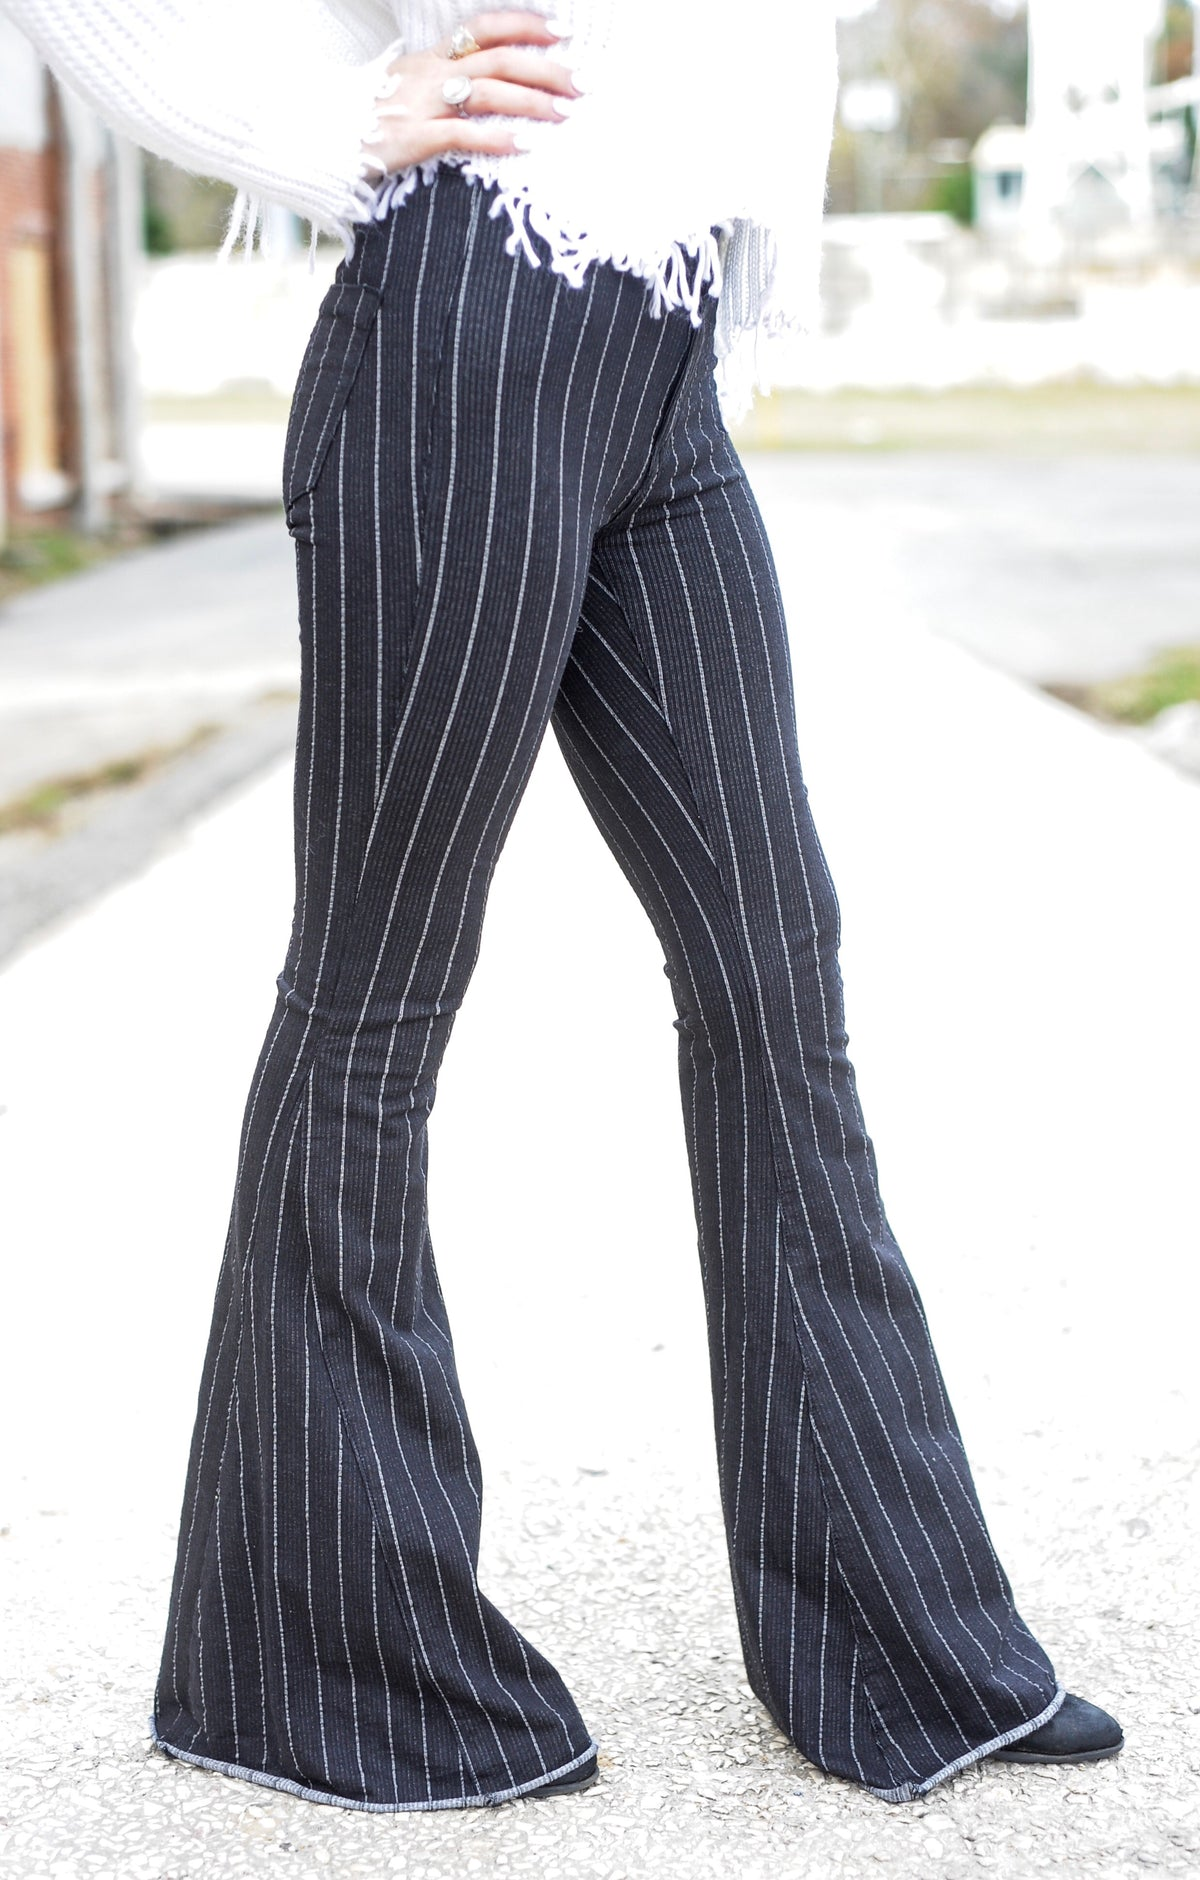 B&W Striped Bell Bottom Jeans